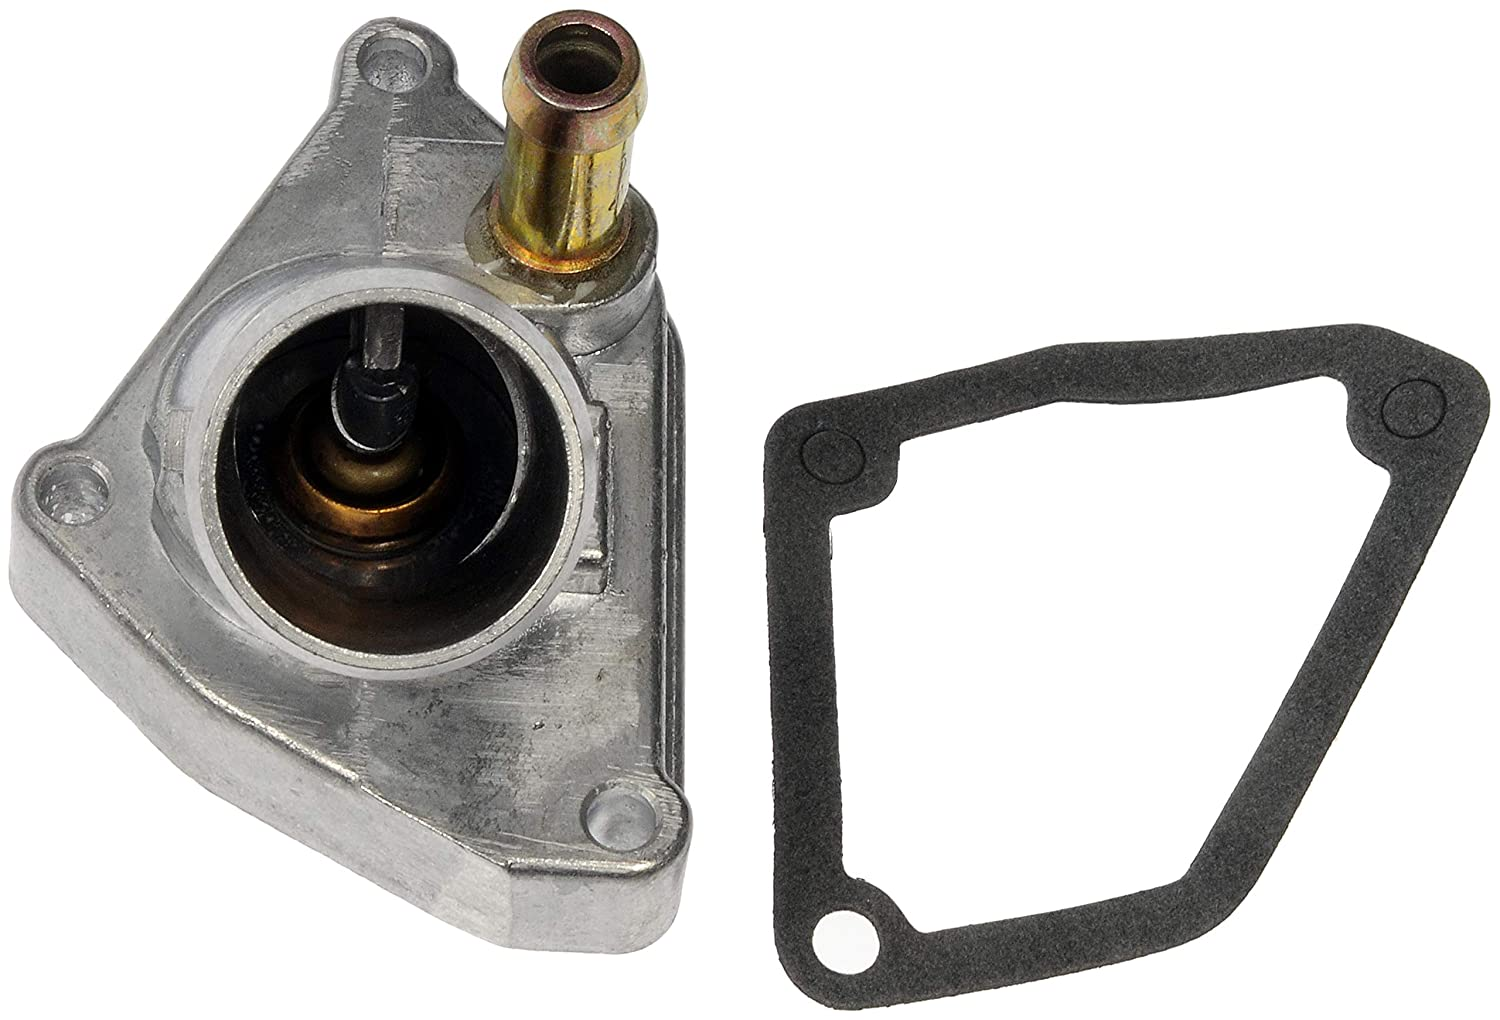 Dorman 902-5249 Integrated Thermostat Housing Assembly for Select Nissan Infiniti Models